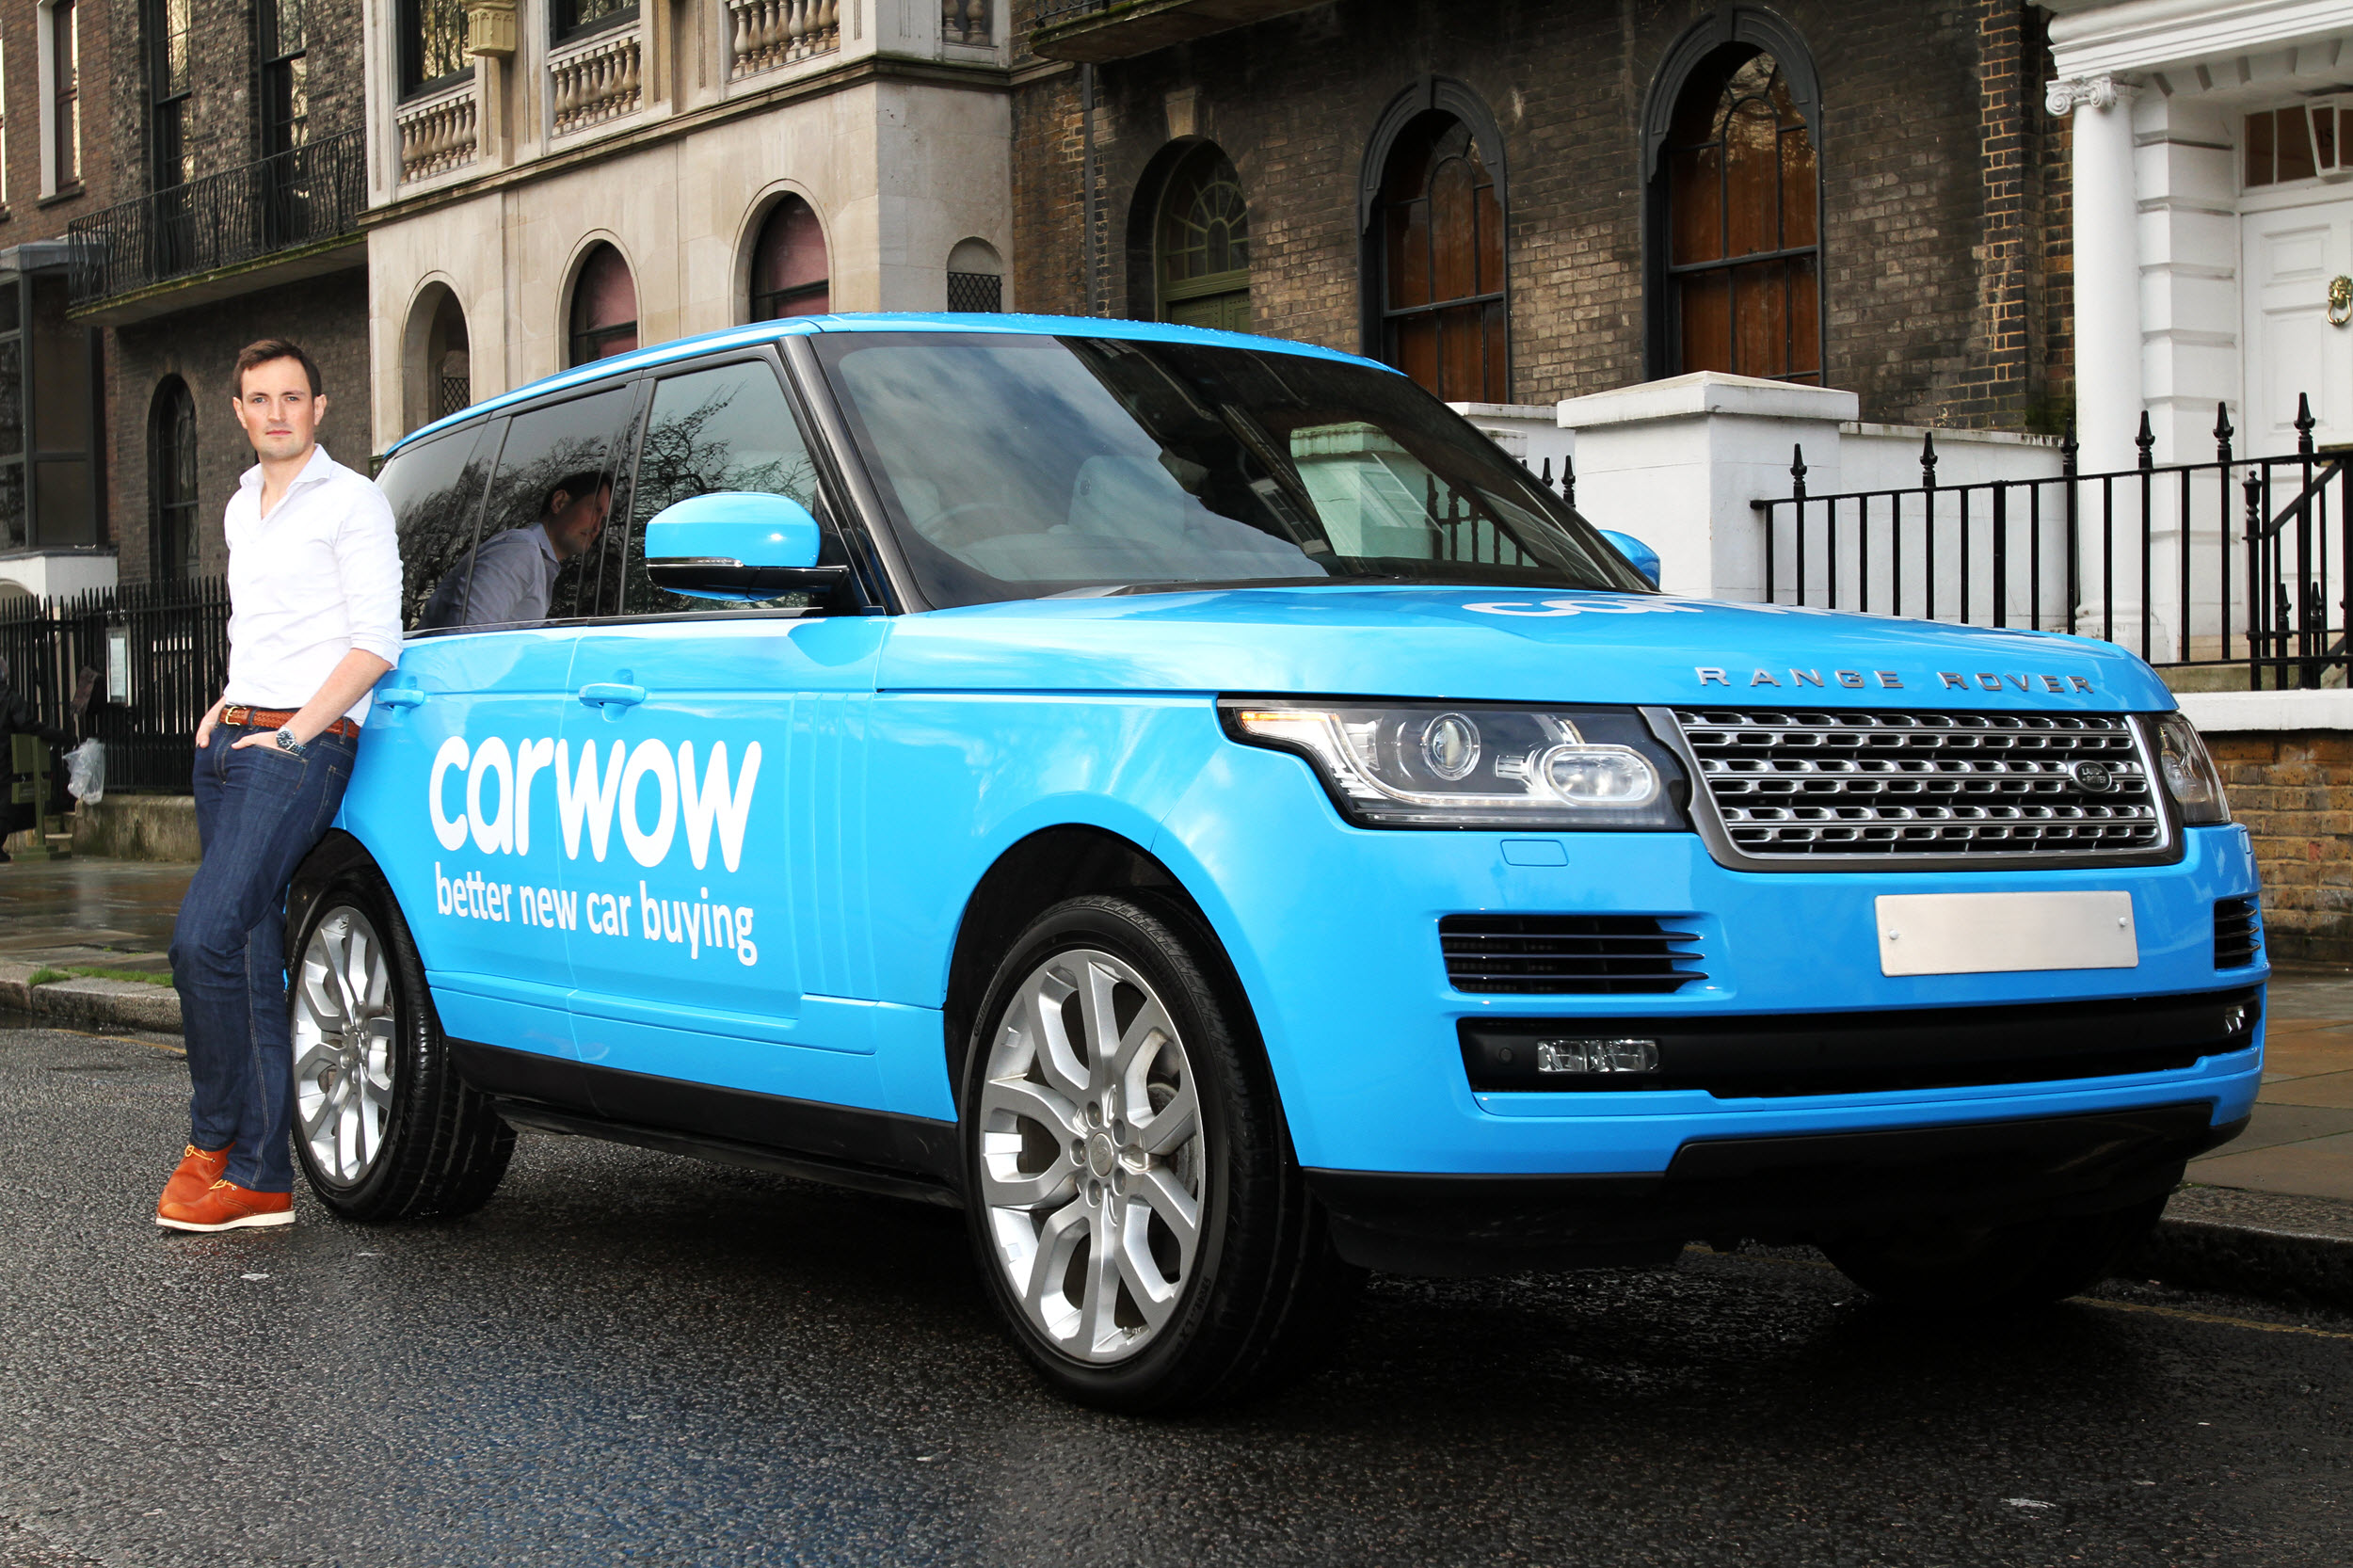 Carwow: A car buying platform making showrooms and haggling a thing of the past